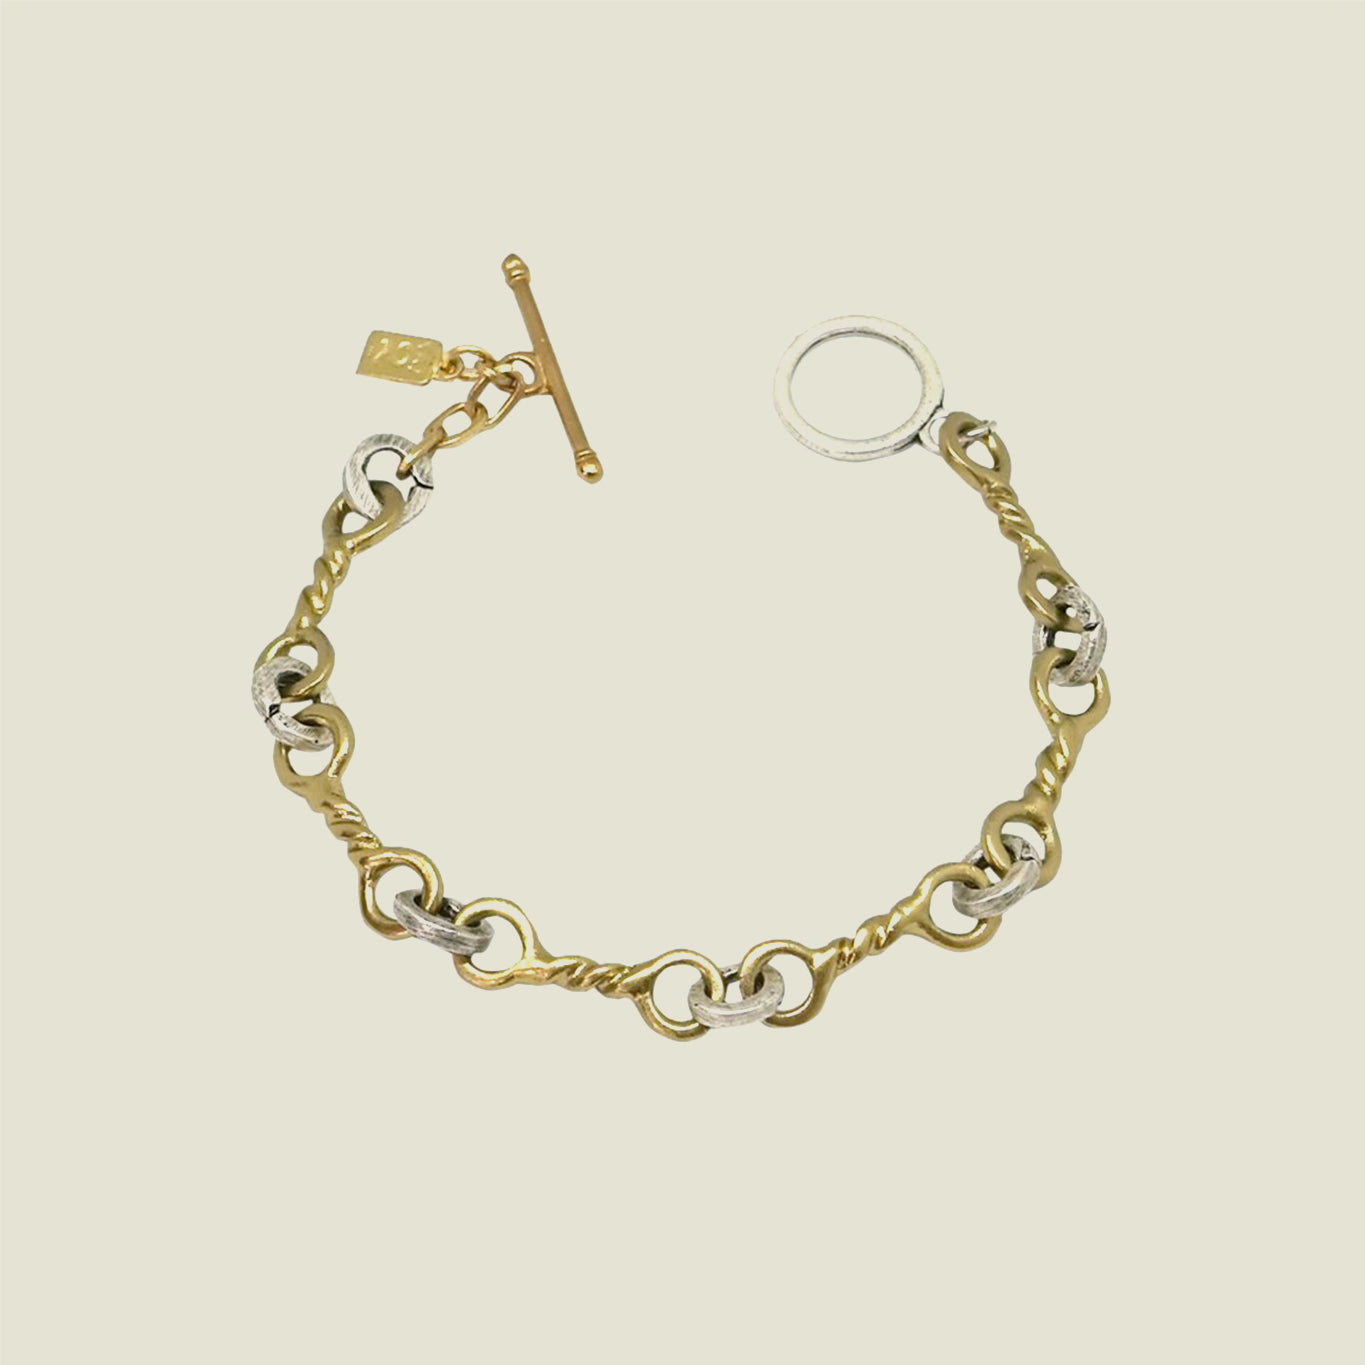 Gold Twisted Ring Bracelet - Blackbird General Store